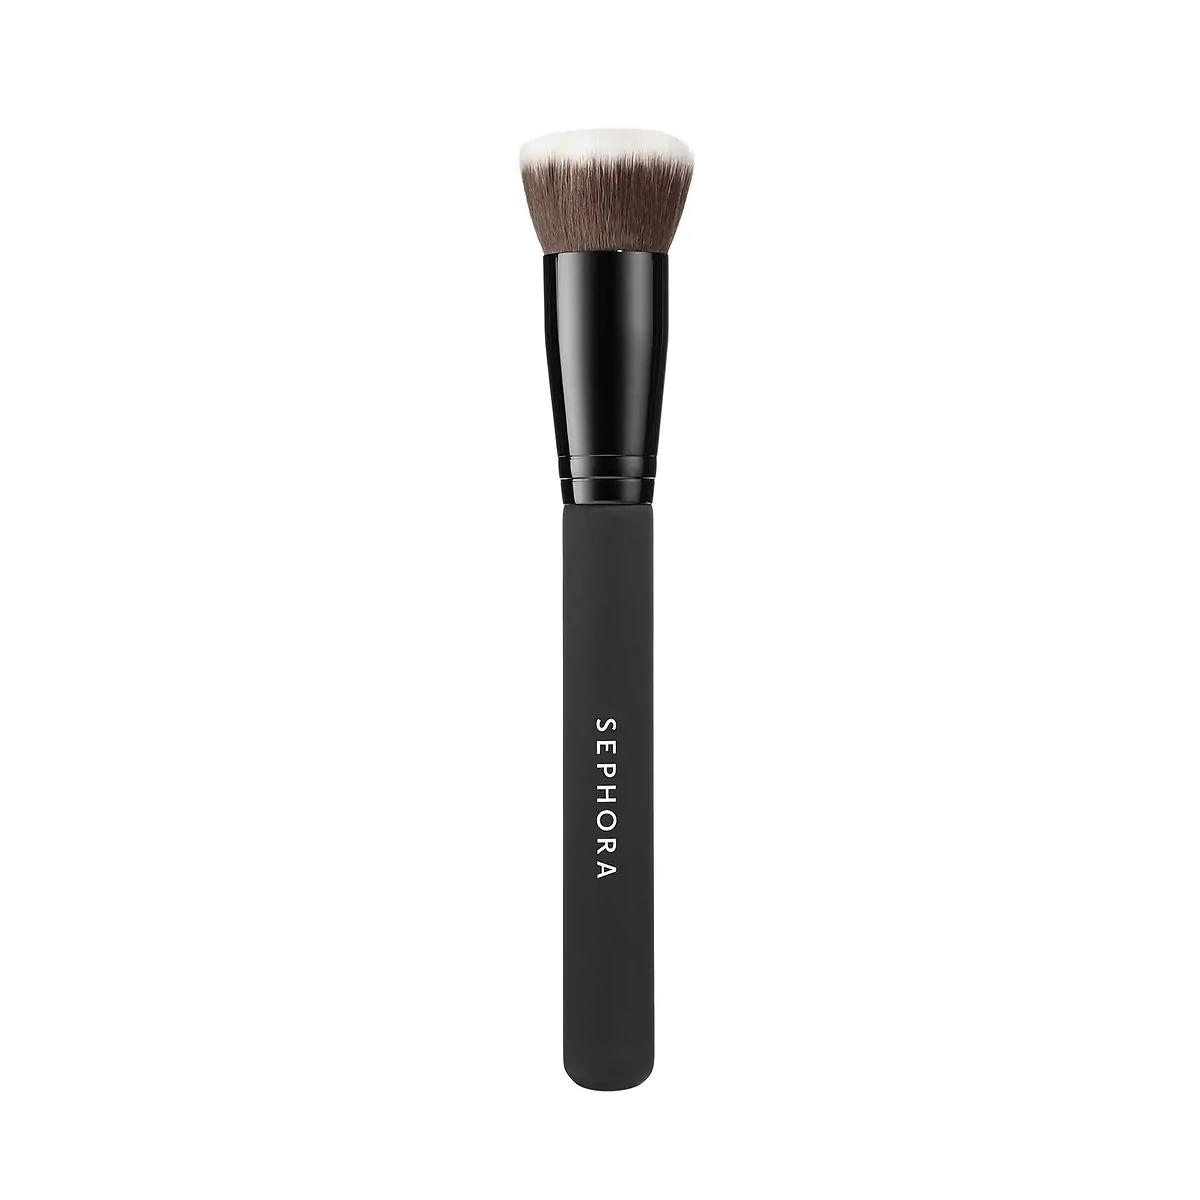 Sephora Ready To Roll Complexion Brush